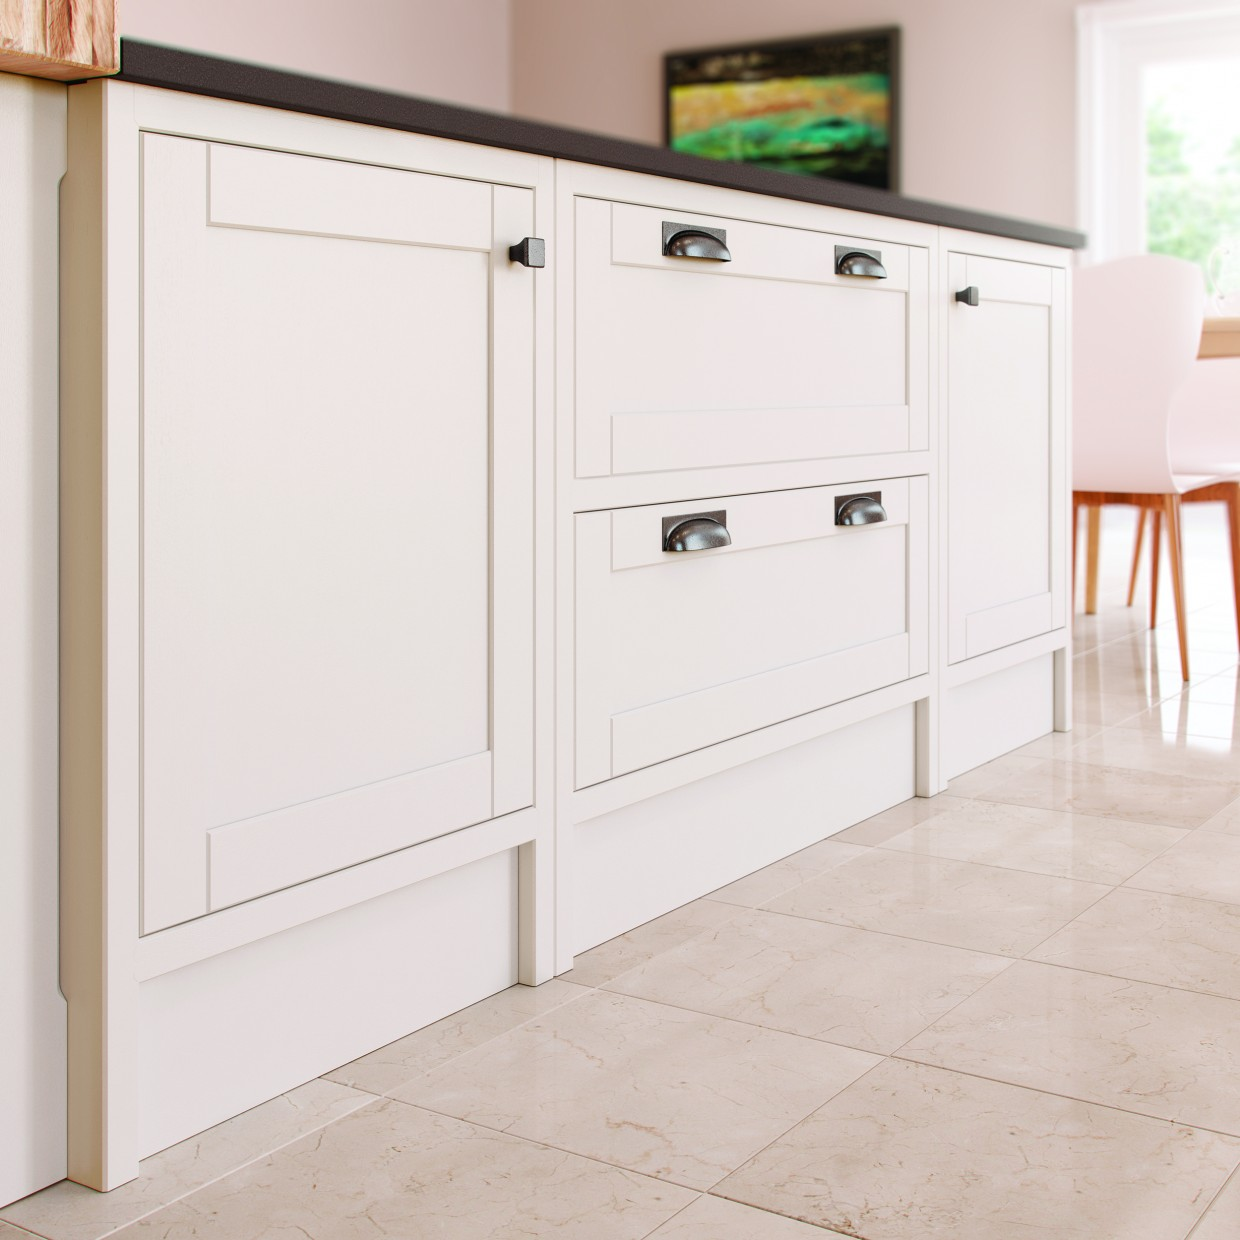 Edmonton - Kitchen Solutions Kilkenny